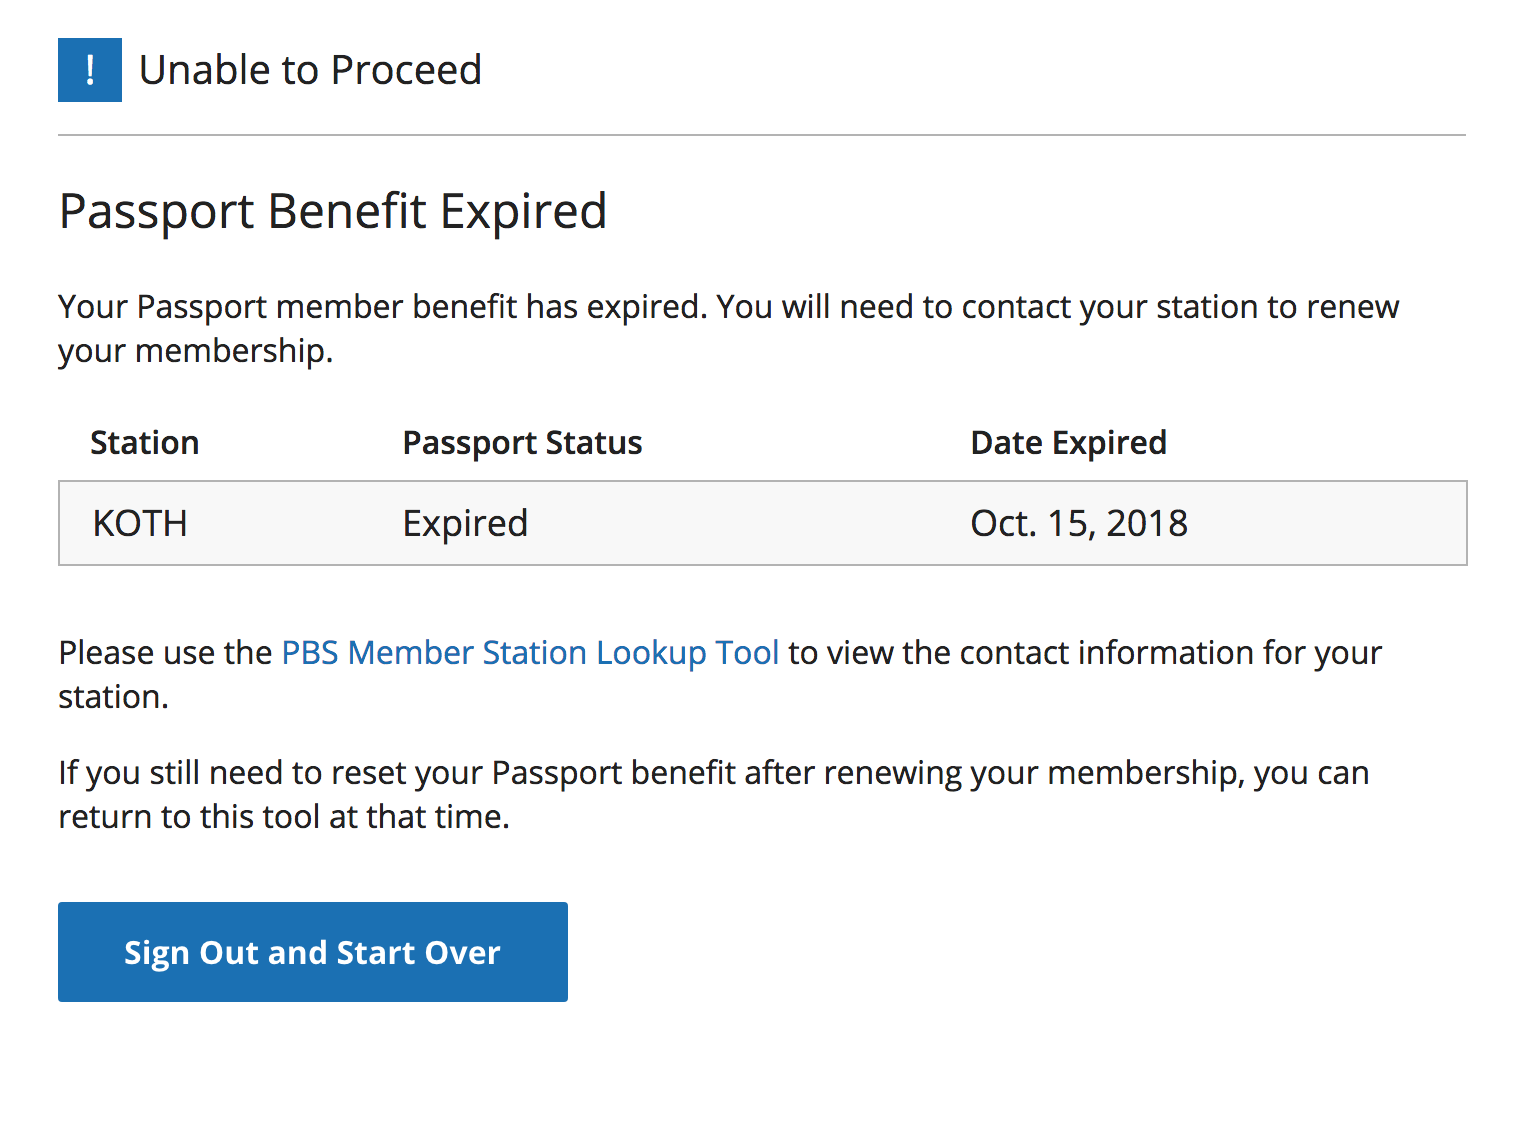 How to Reset Your Access for Your Passport Benefit : PBS